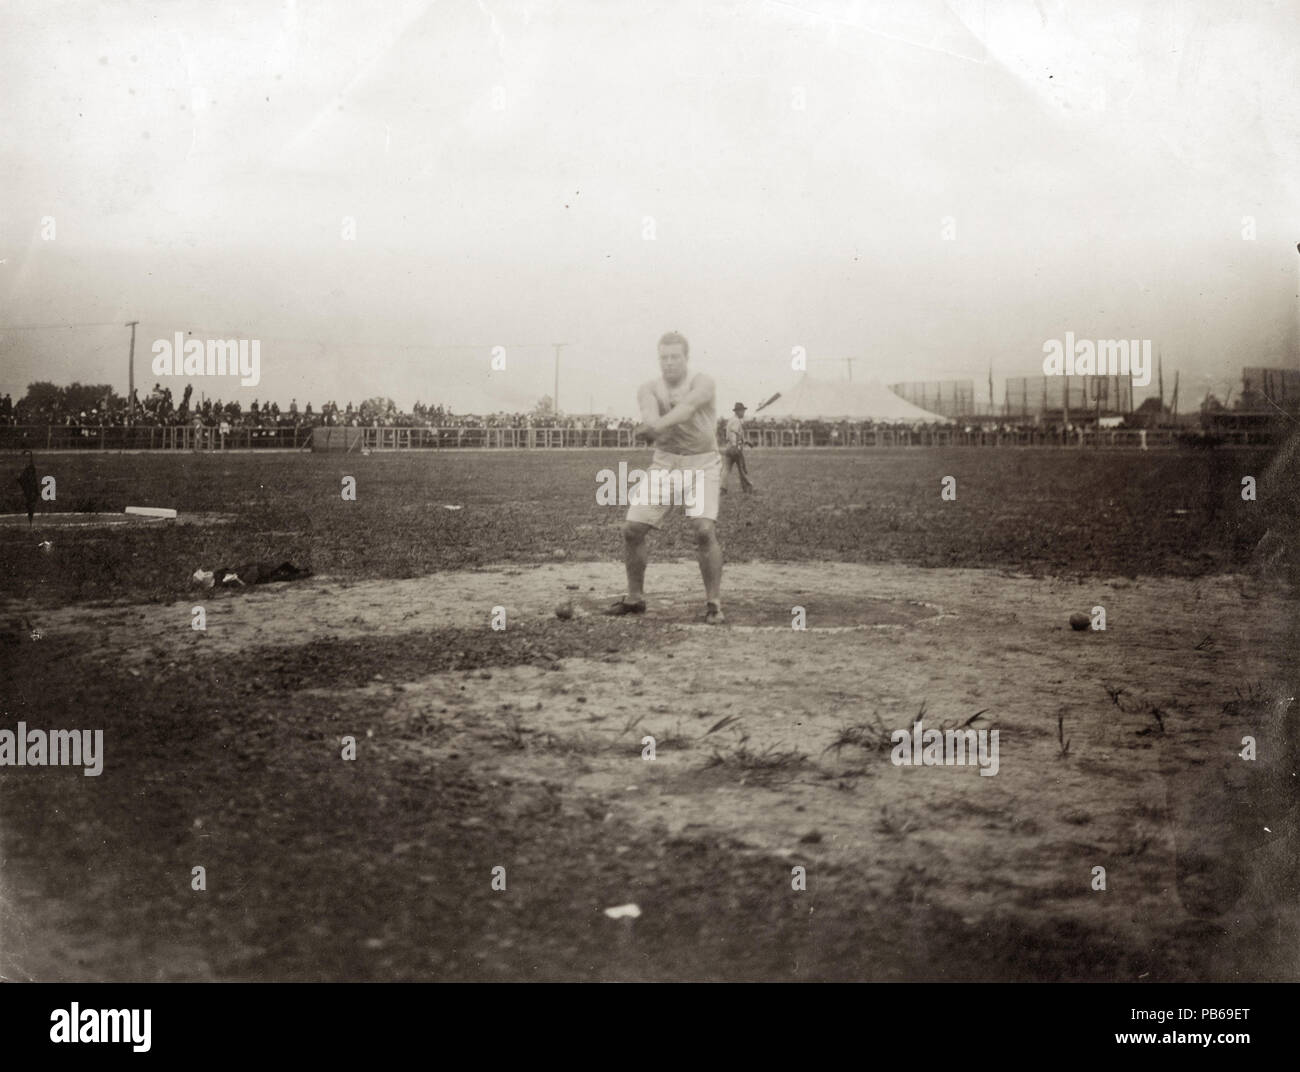 837 John Flannigan of the Greater New York Irish Athletic Association, throwing the 16 pound hammer during the 1904 Olympics - Stock Image